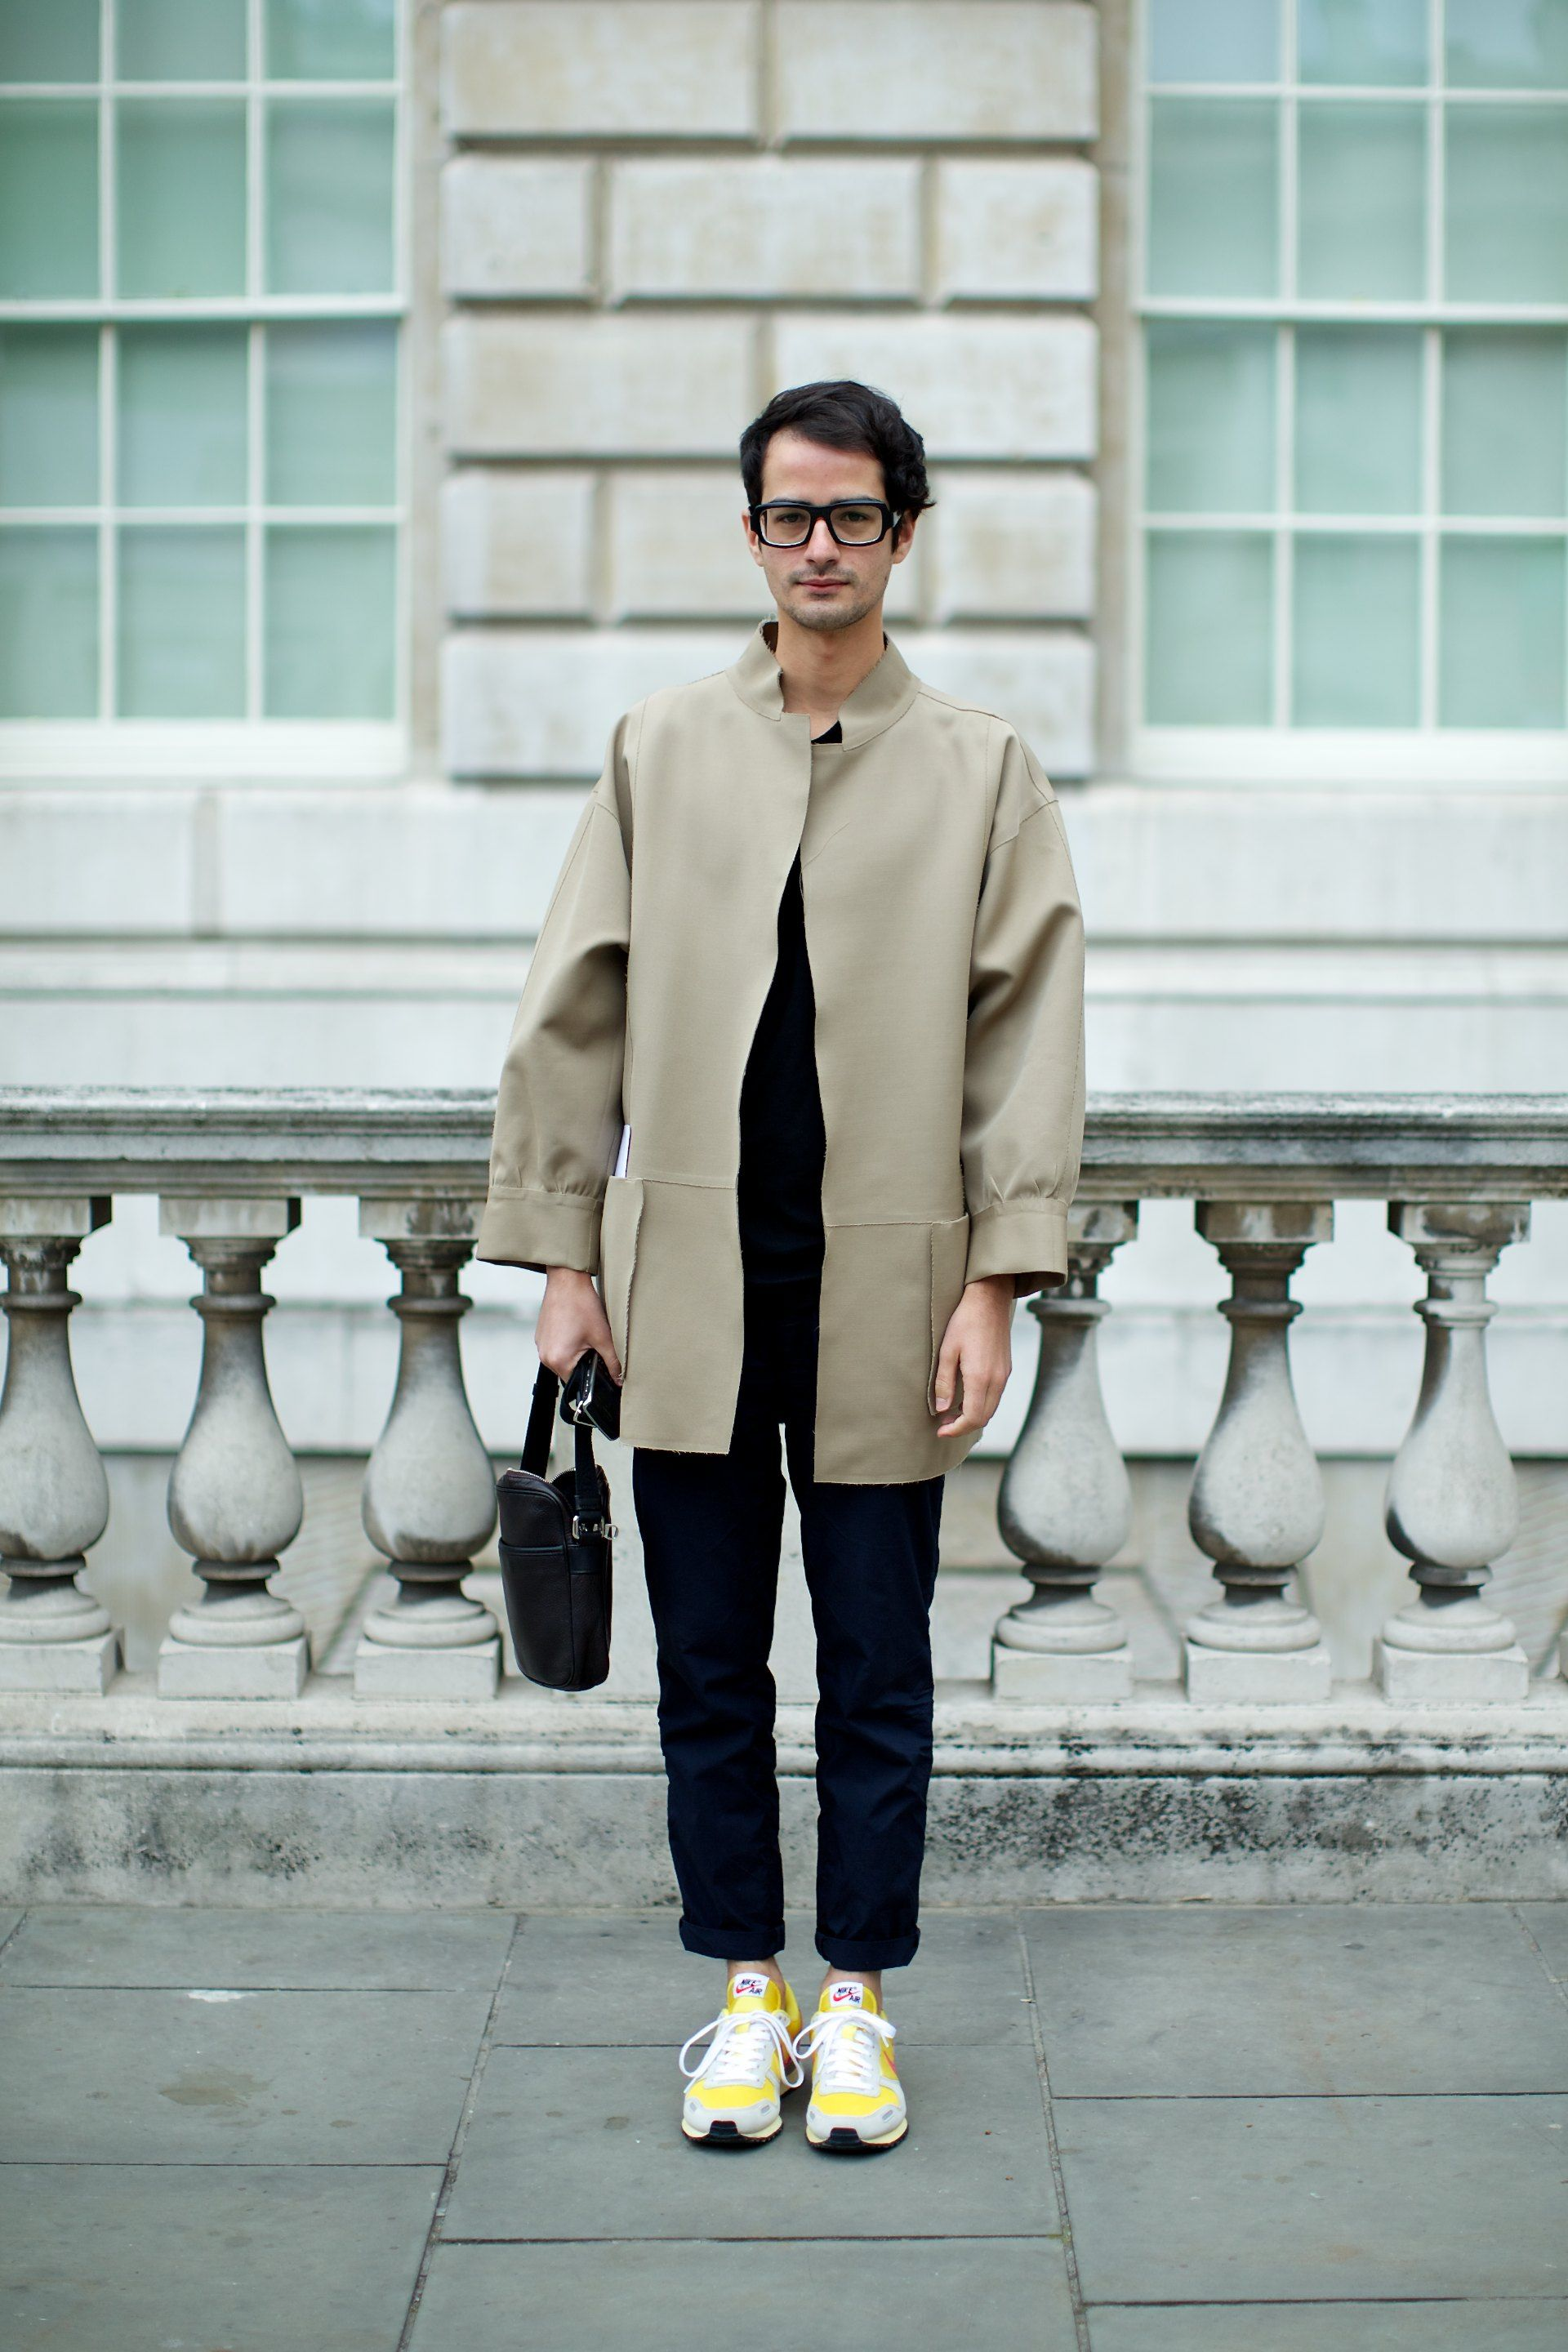 Street Style at London Fashion Week. Marcus Dawes for The LFW Daily. (www.marcusdawes.com)